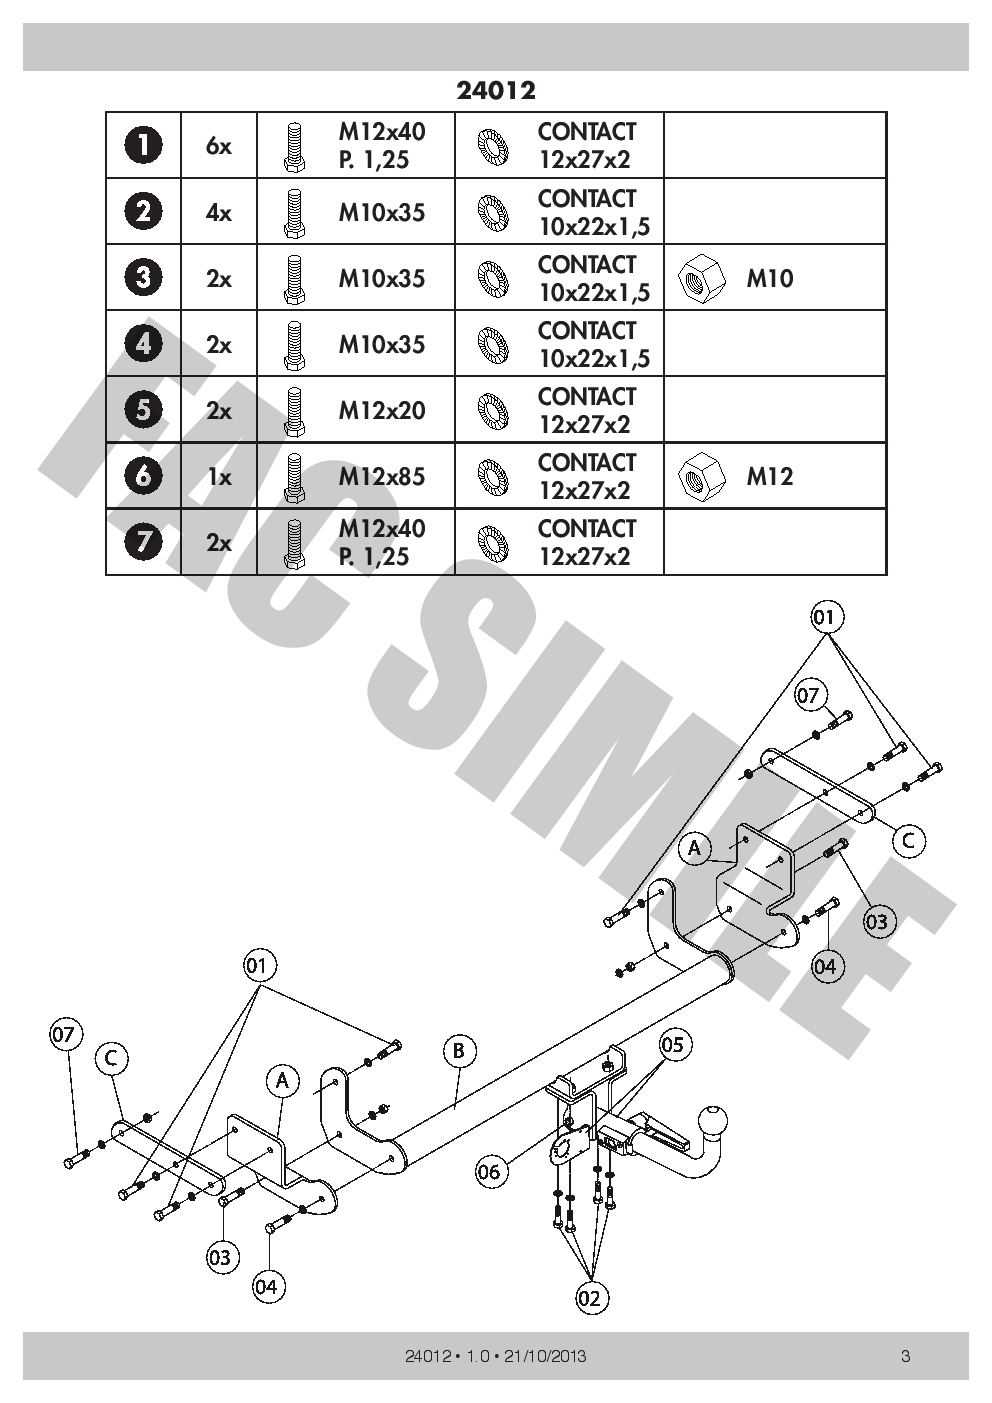 Superb Detachable Towbar 13P C2 Wiring For Mitsubishi Pajero Pinin 4Wd 5Dr Wiring Cloud Hisonuggs Outletorg